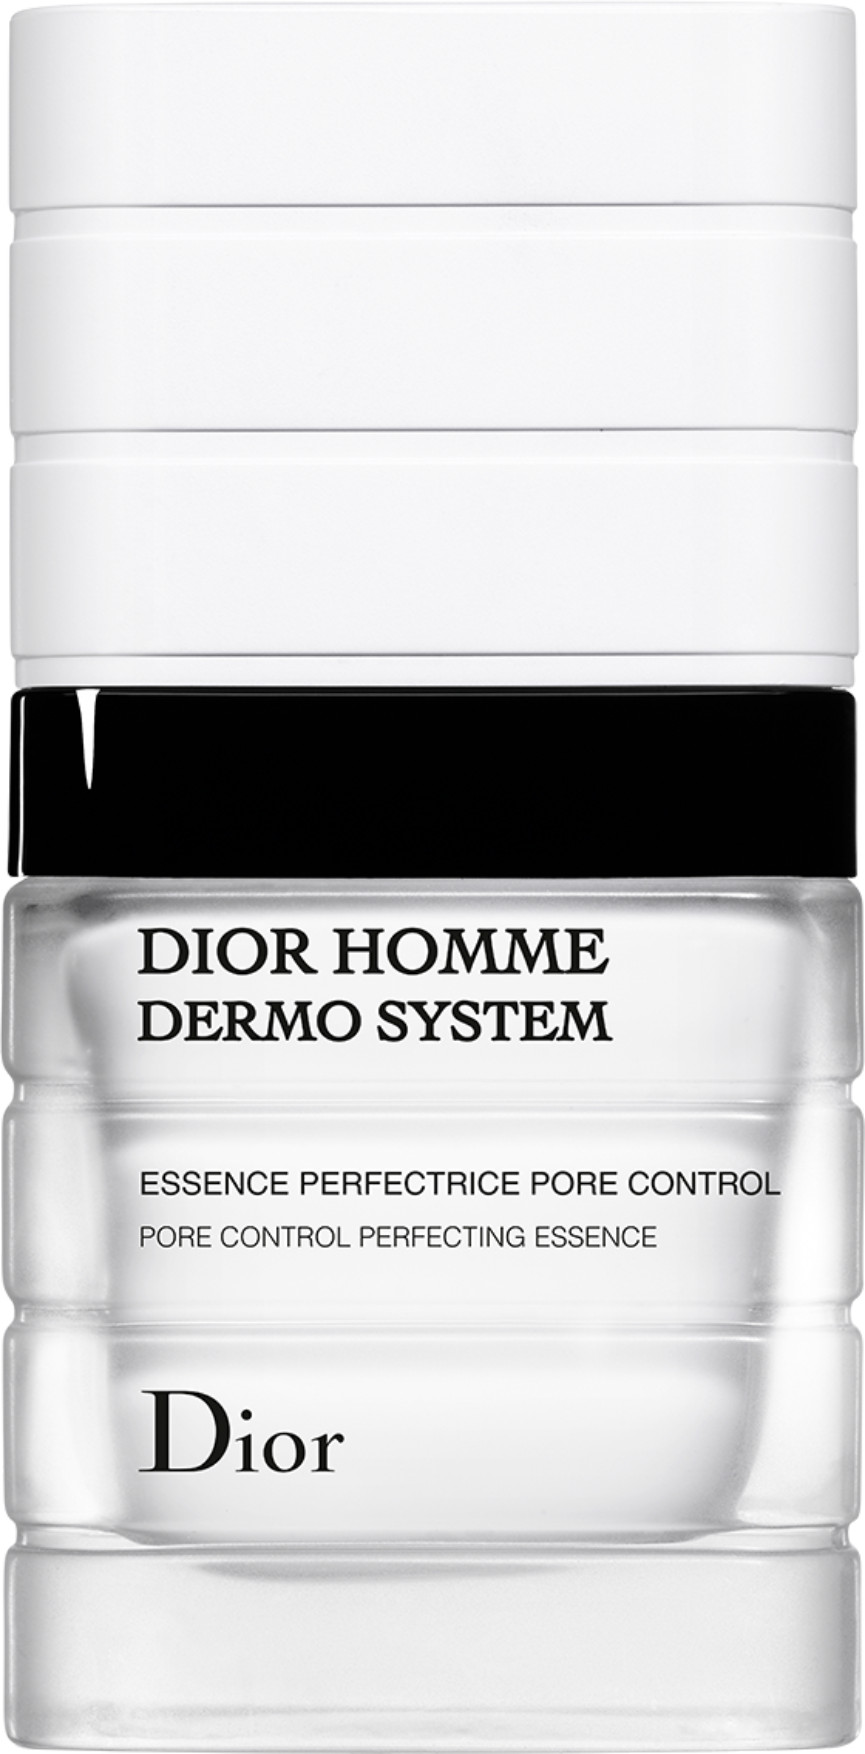 Homme Dermo System Pore Control Perfecting Essence